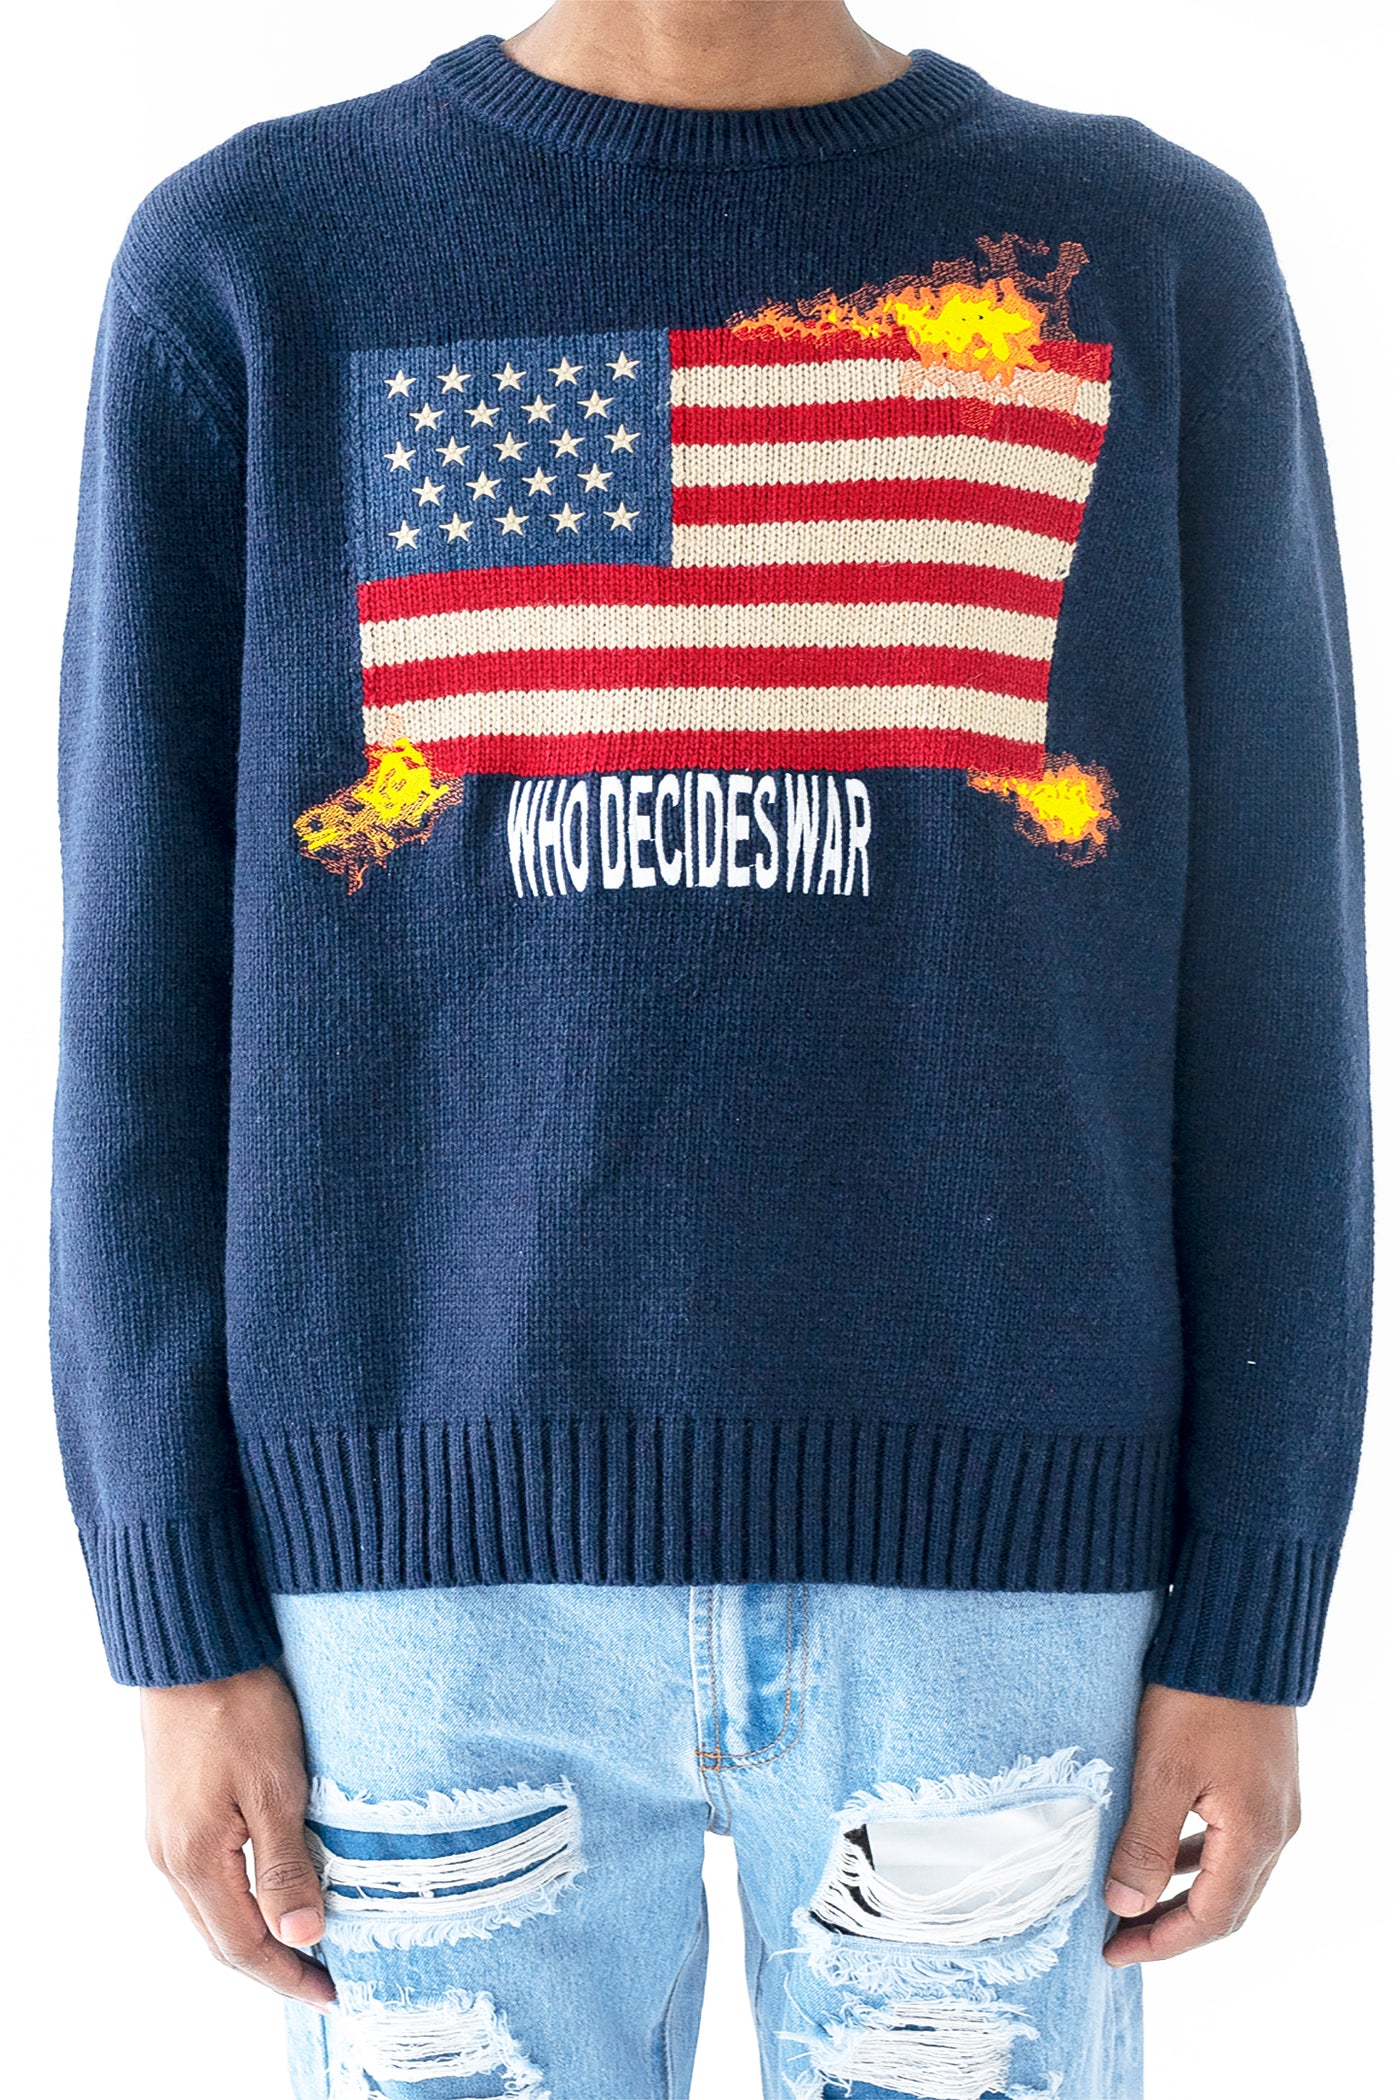 WHO DECIDES WAR CLASSIC KNIT SWEATER